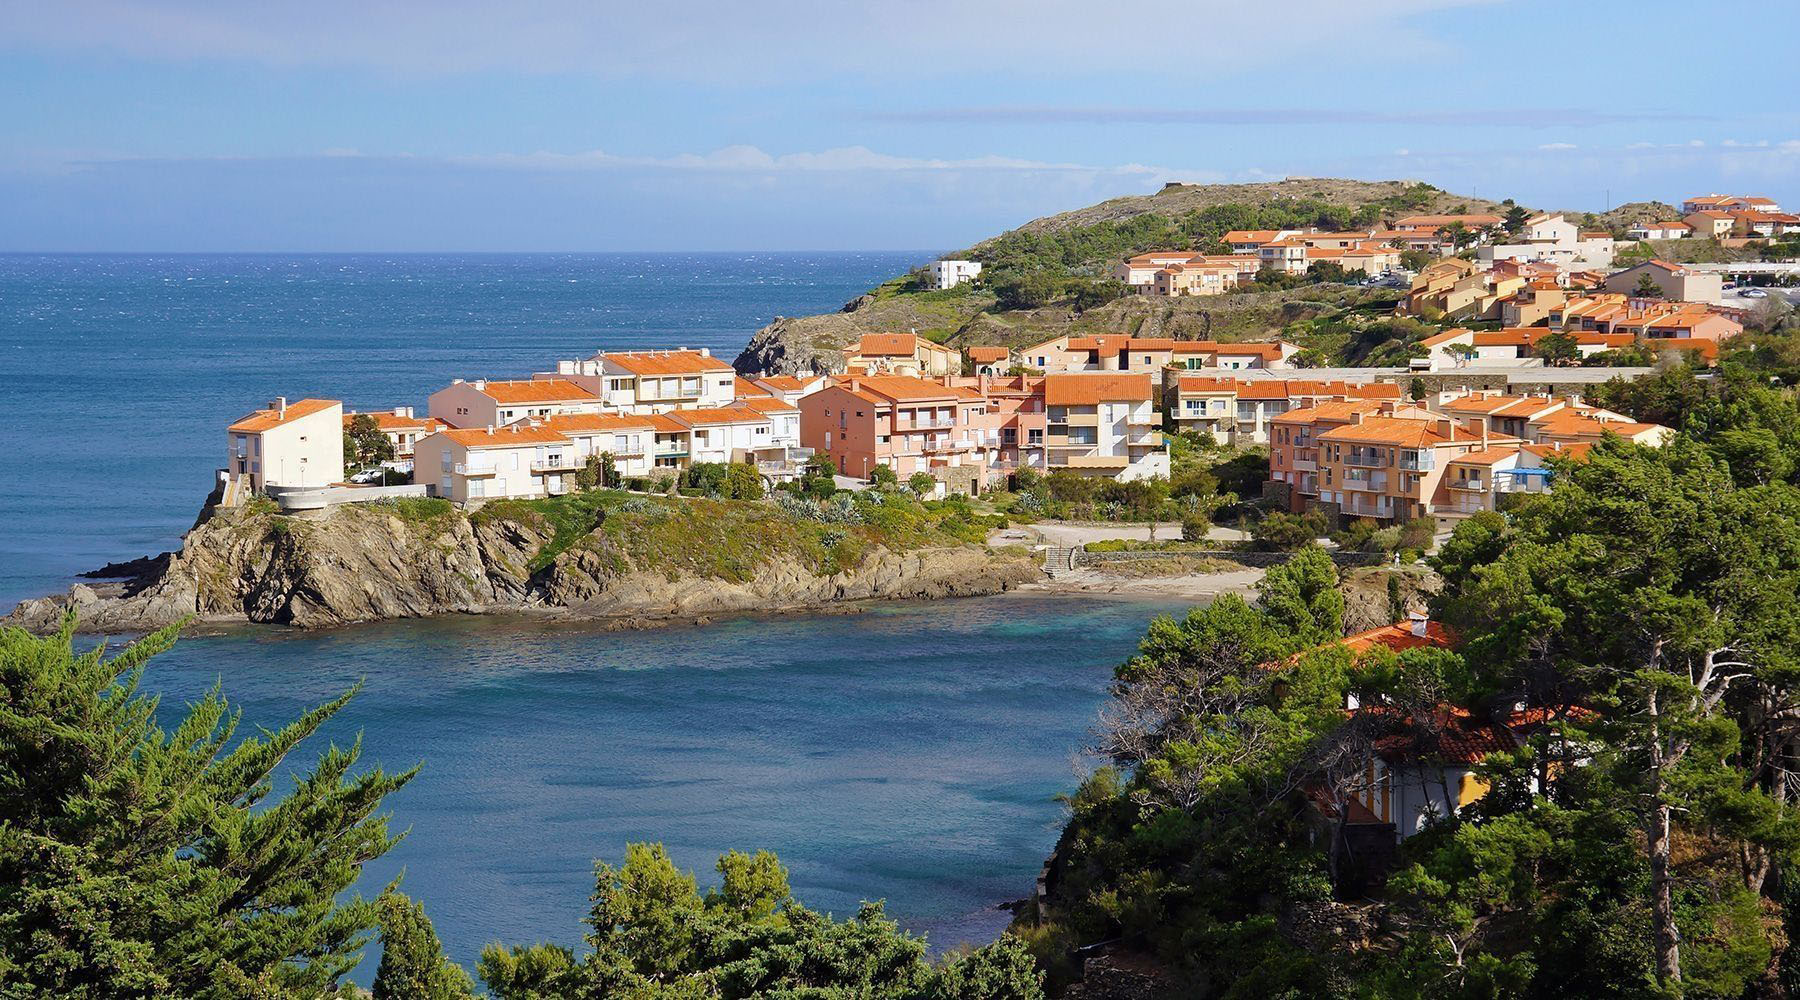 Luxury Cruise to Port-Vendres, France